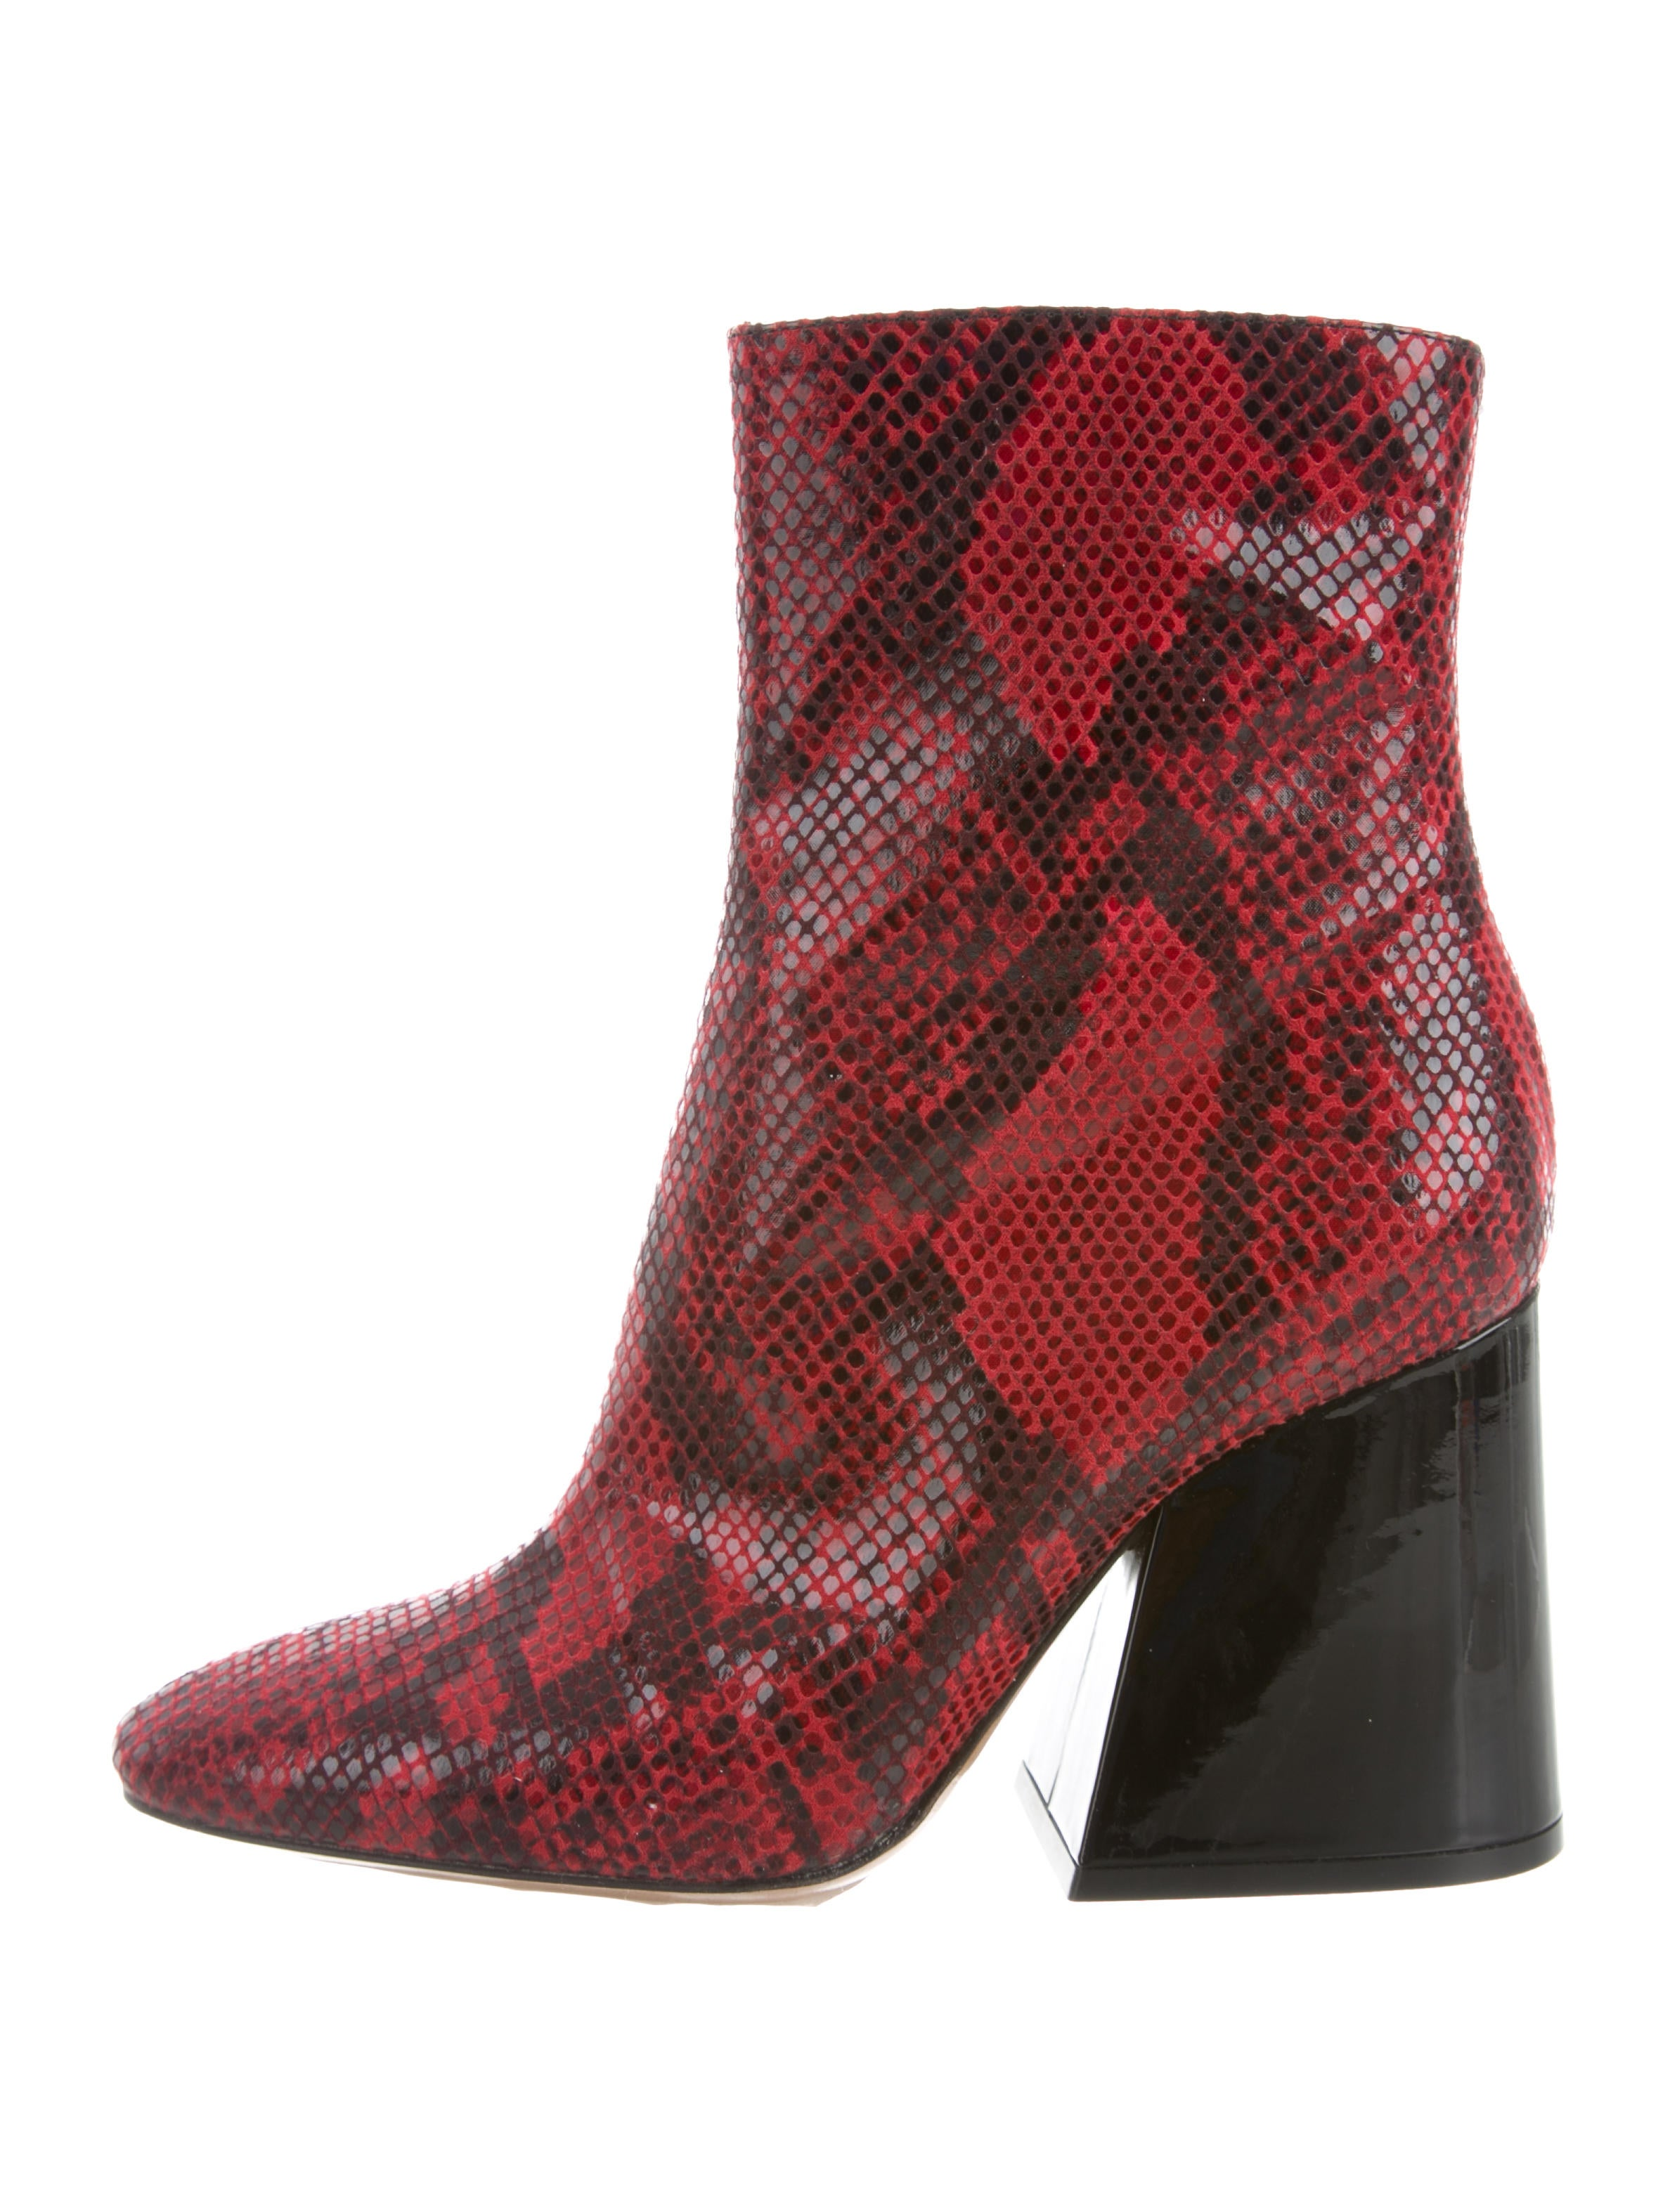 outlet visit Maison Margiela Totokaelo Ankle Boots w/ Tags reliable for sale clearance largest supplier discount new styles new sale online 8tTGXw